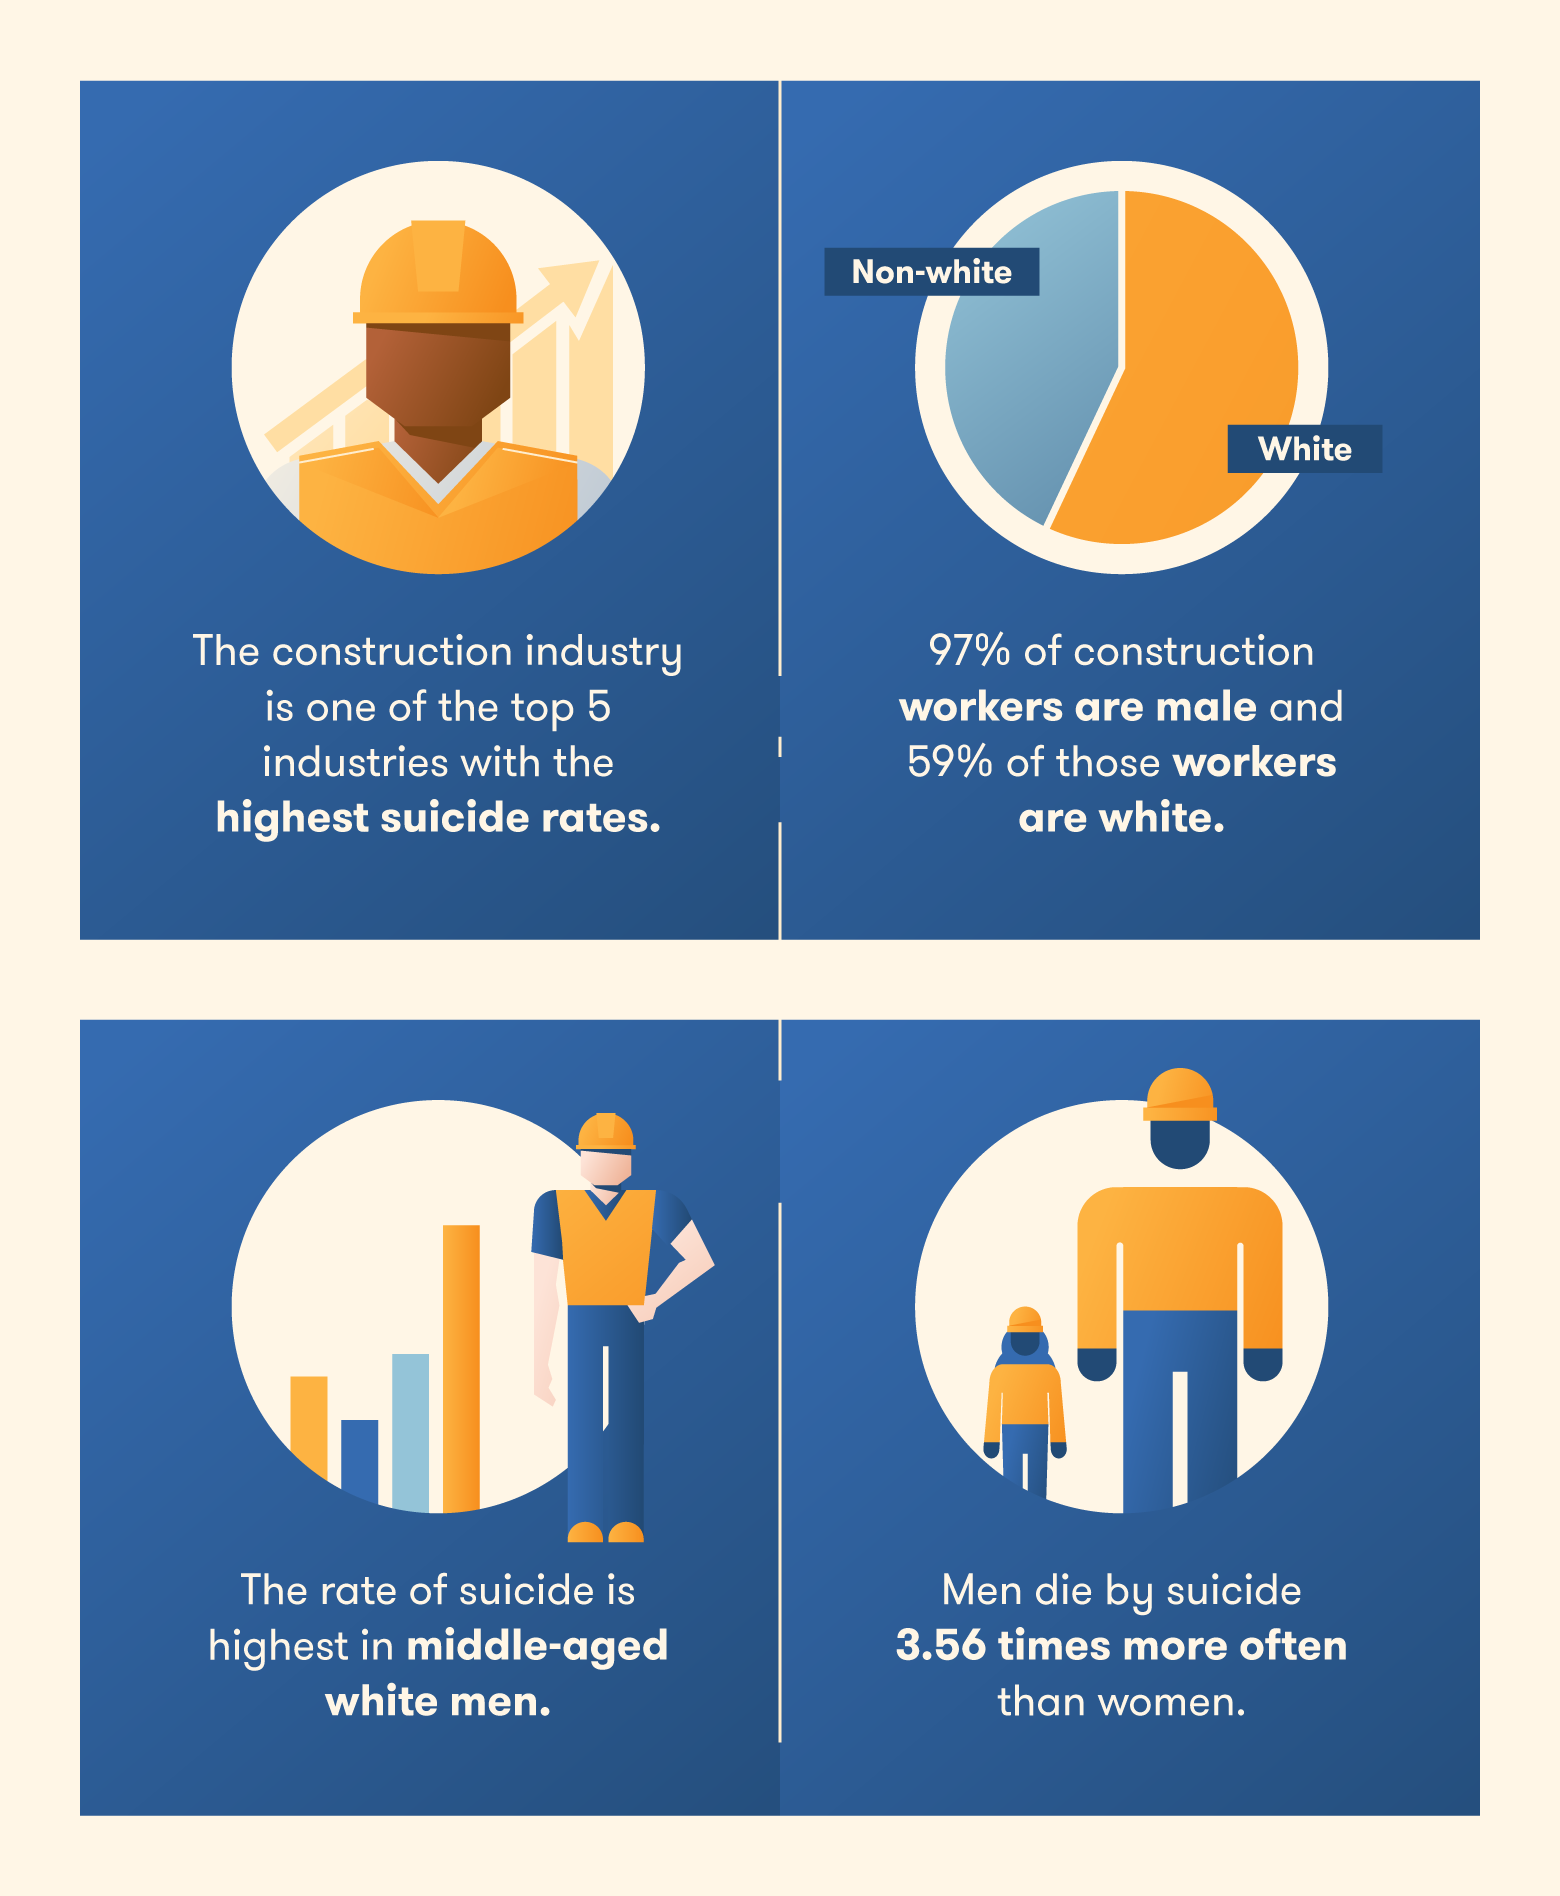 statistics on suicide rates in construction industry